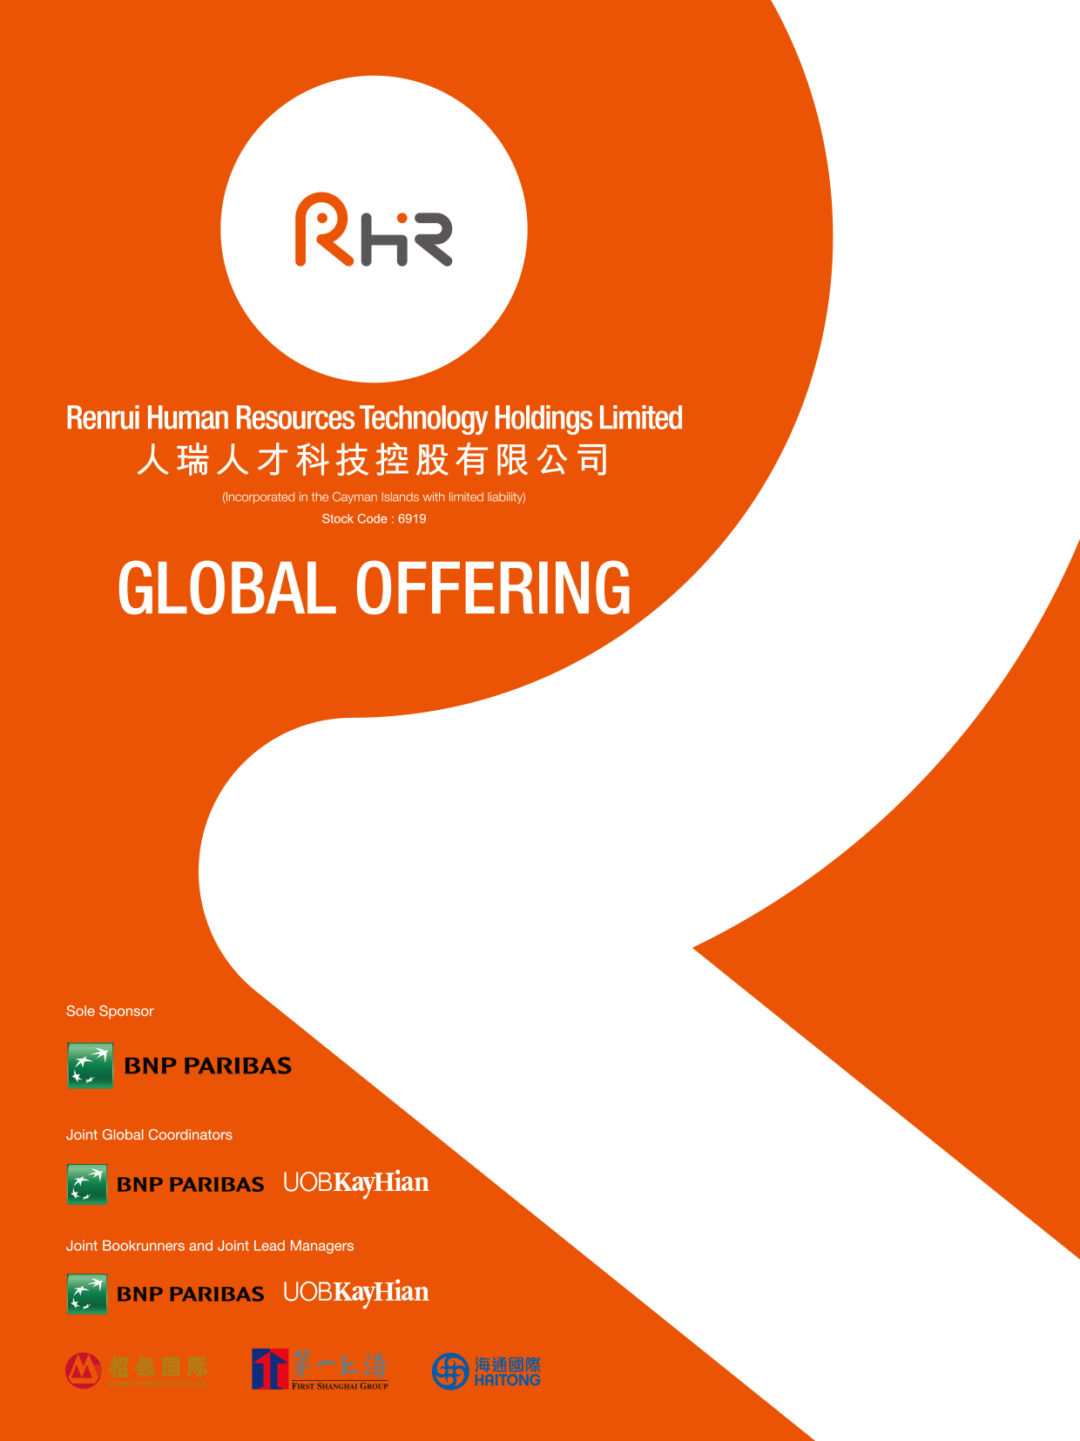 Renrui Human Resources Technology Holdings Limited